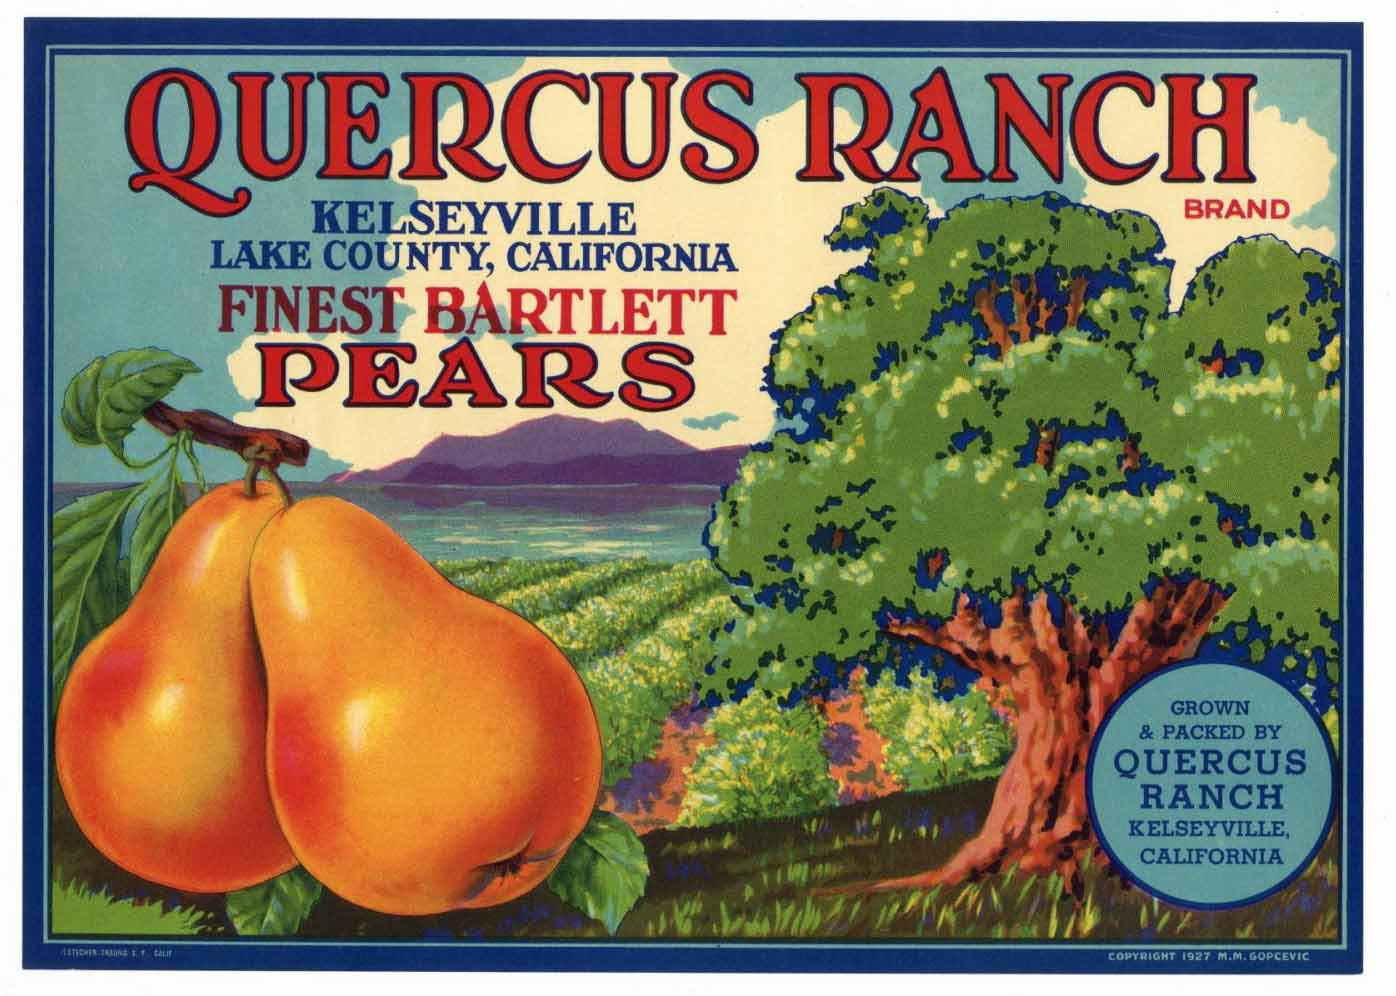 QUERCUS RANCH Brand Vintage Pear Crate Label (P185C)